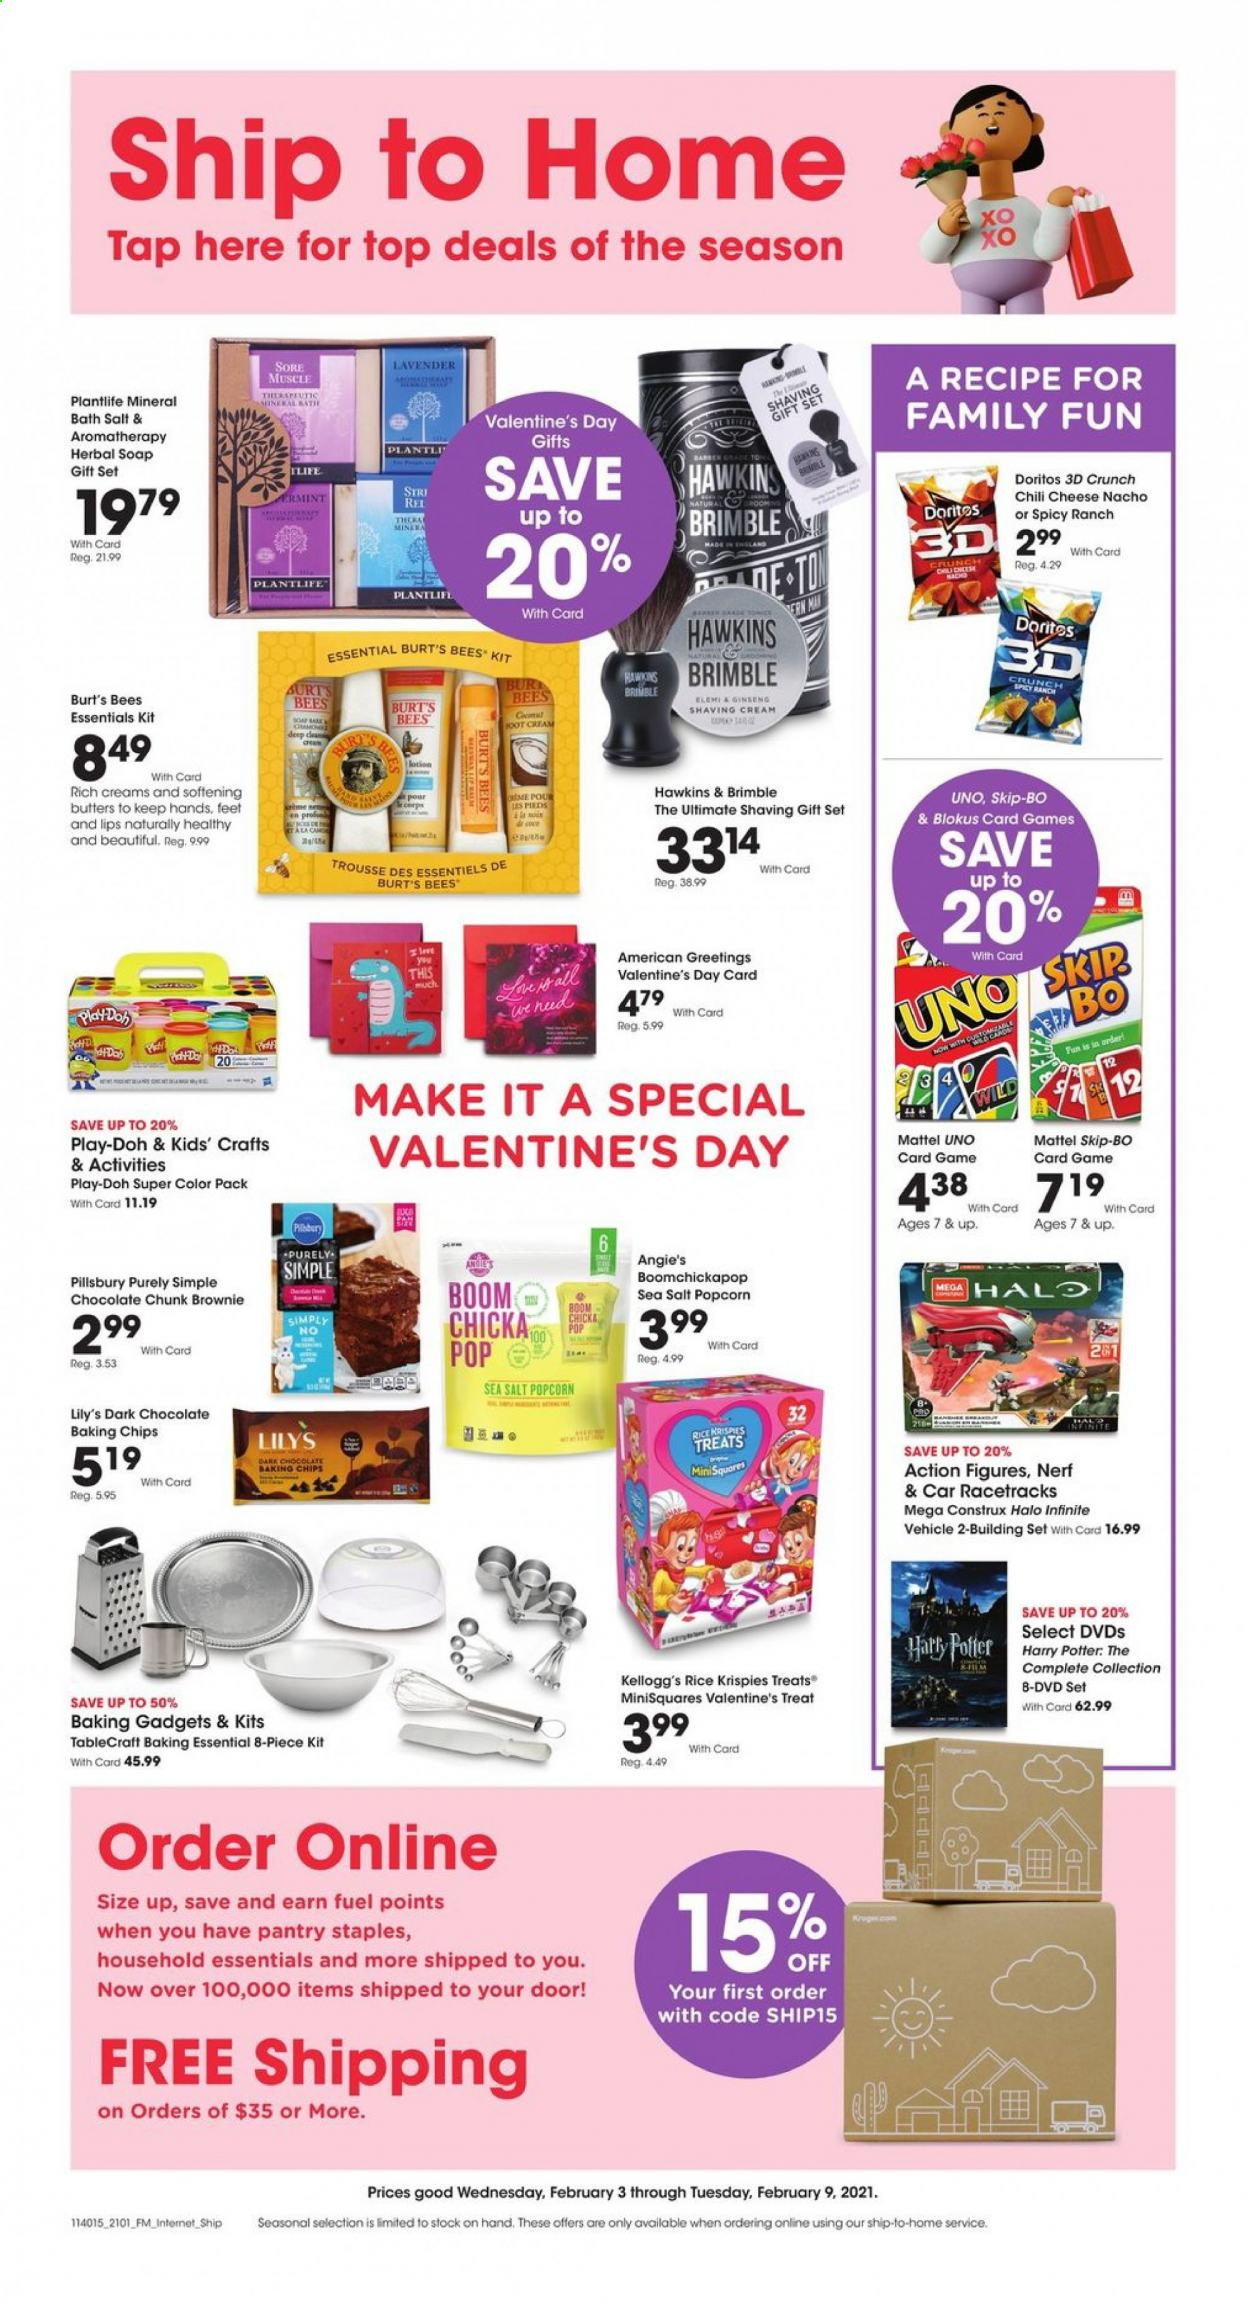 Kroger Flyer - 02.03.2021 - 02.09.2021 - Sales products - brownies, Pillsbury, Treats, cheese, chocolate, Kellogg's, dark chocolate, Doritos, popcorn, sea salt, baking chips, Rice Krispies, UNO, Voom, bath salt, soap, body lotion, gift set, Harry Potter, dvd, Nerf, Mattel, Play-doh, vehicle, ginseng, essentials. Page 1.